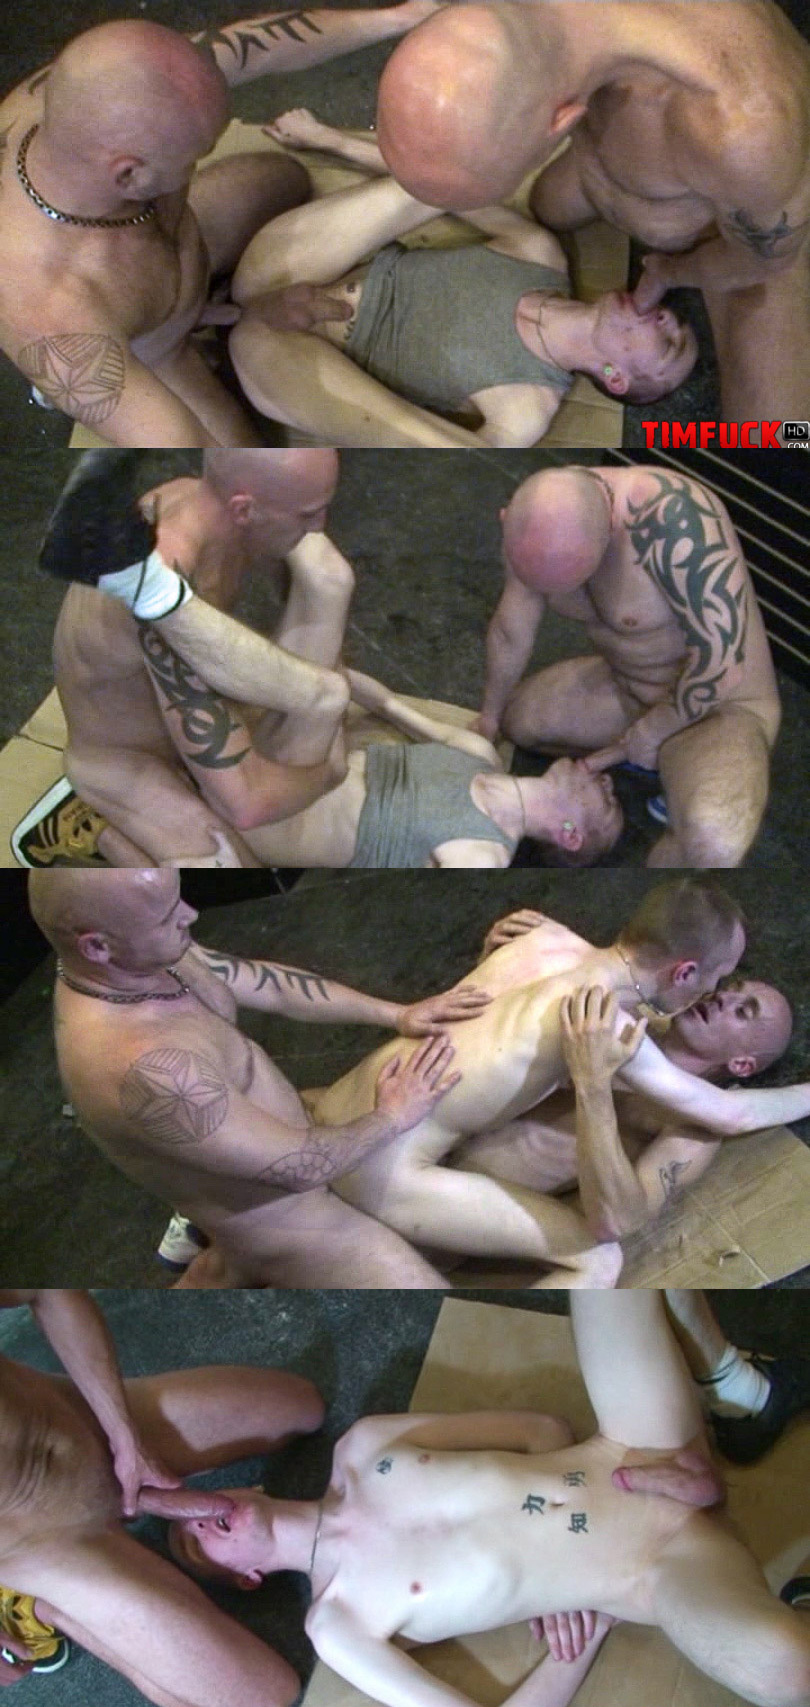 Spit Roasted Raw by Two Skinheads